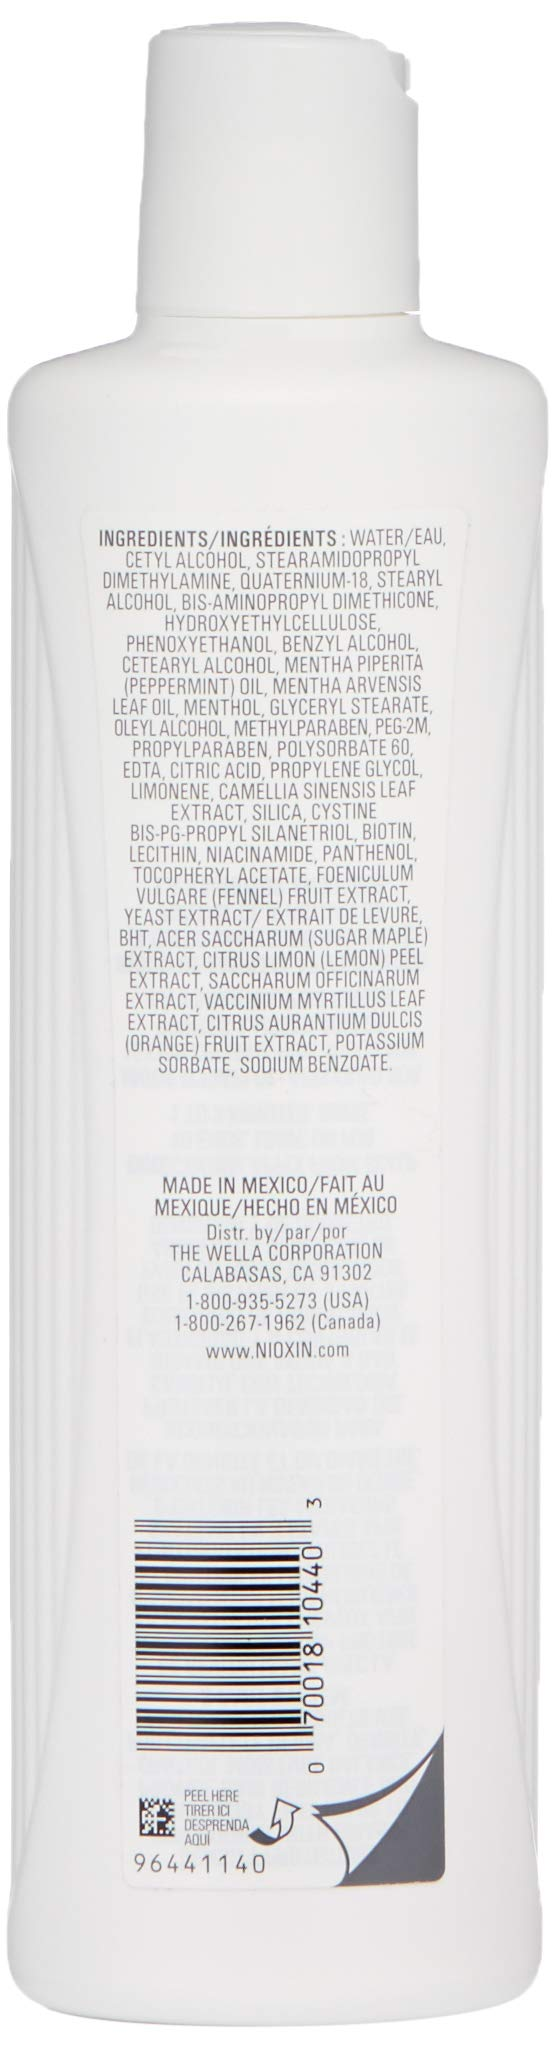 Nioxin System 3 Scalp Therapy Conditioner, 10.1 oz. by Nioxin (Image #2)